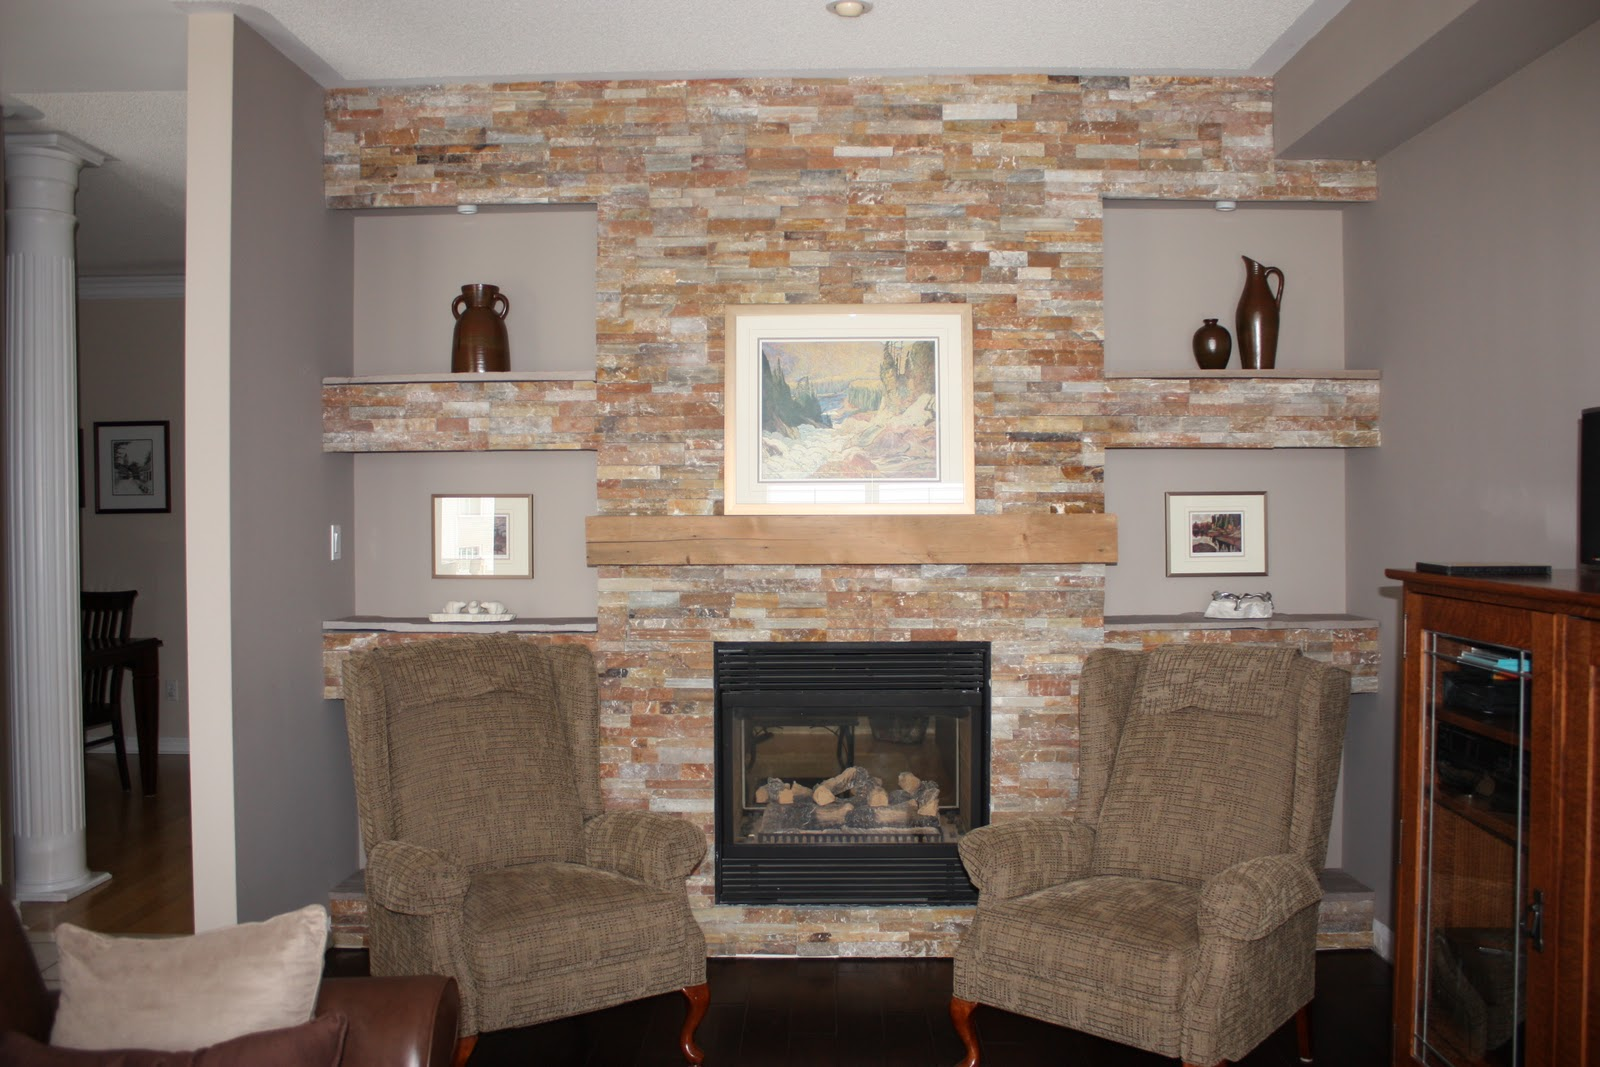 WHAT'S NEW OVER THE HILL?: Cultured Stone around the